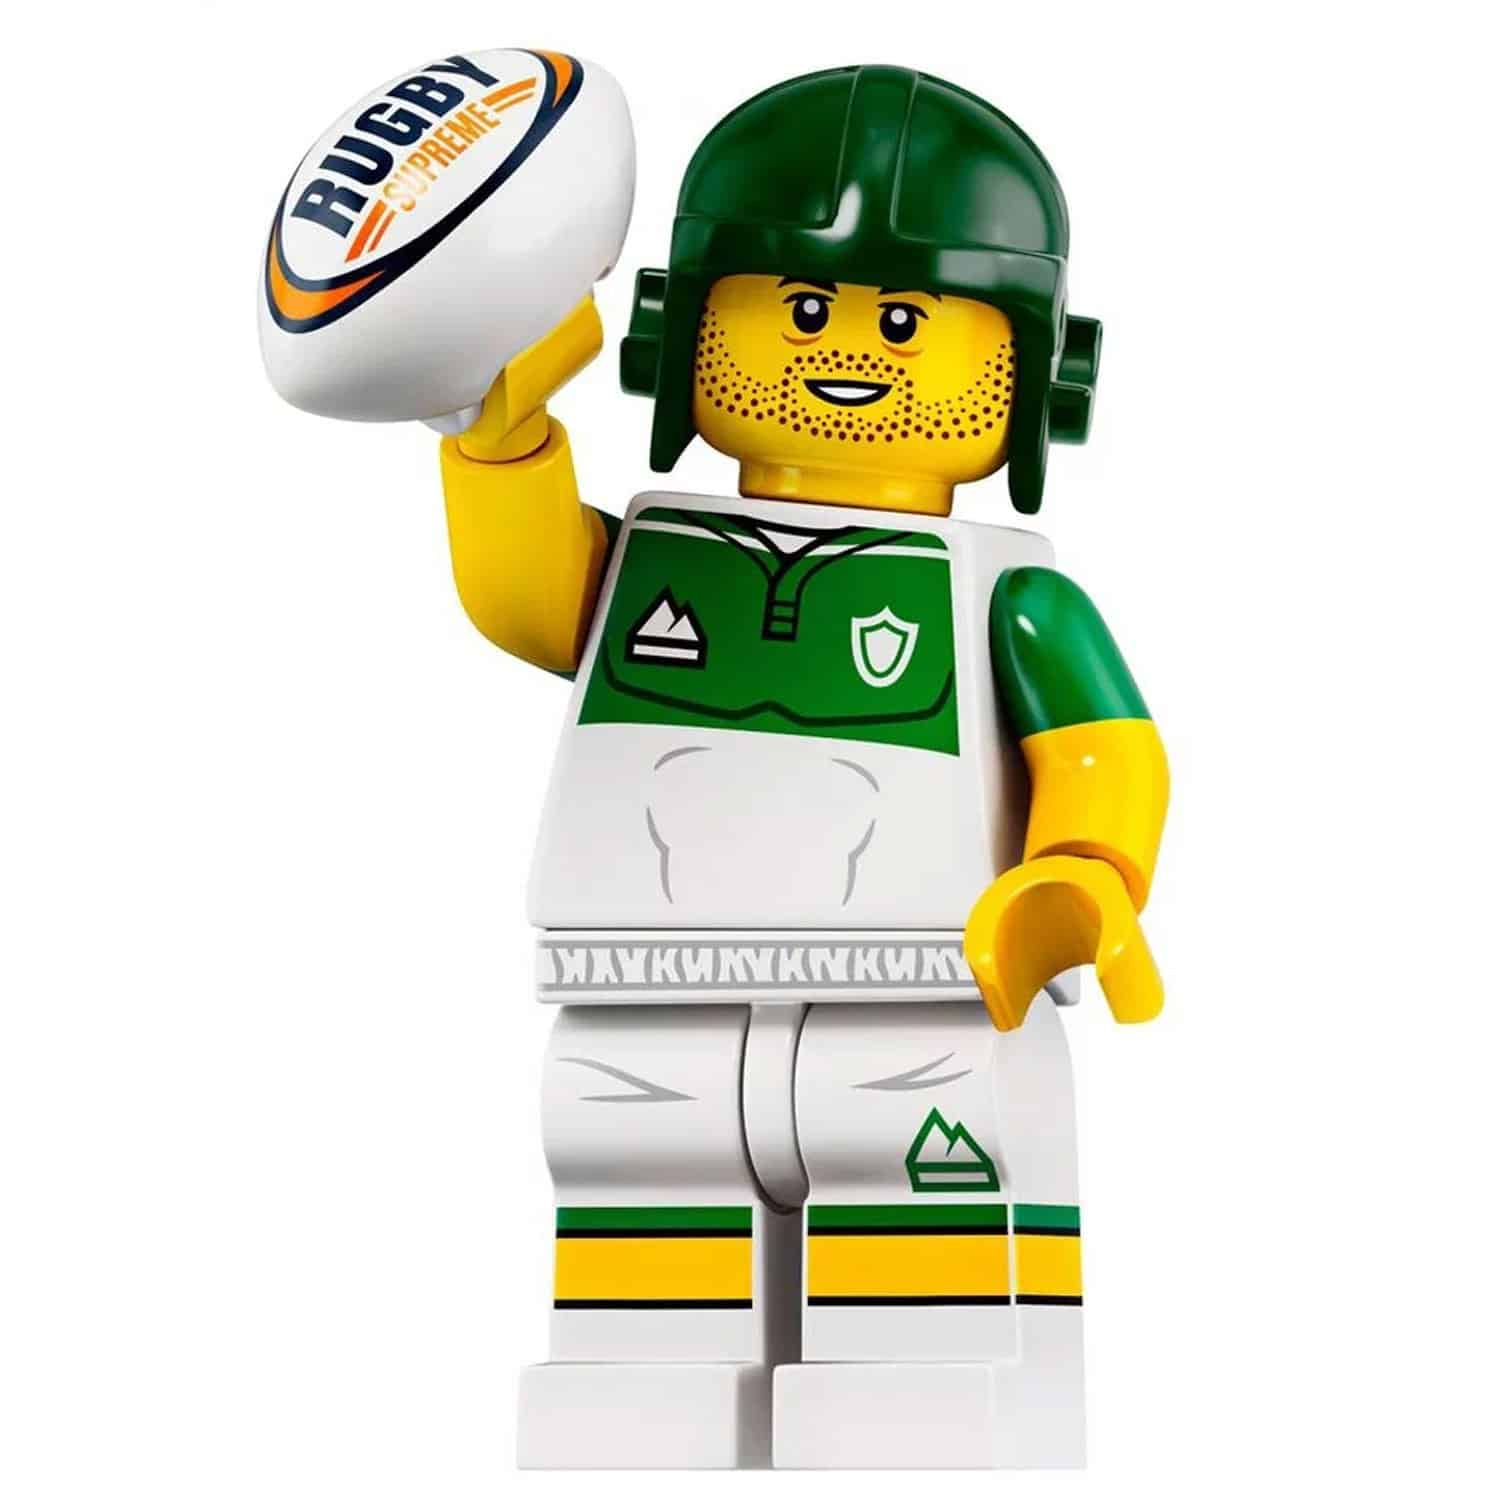 LEGO Rugby Player Minifigure – Series 19 CMF